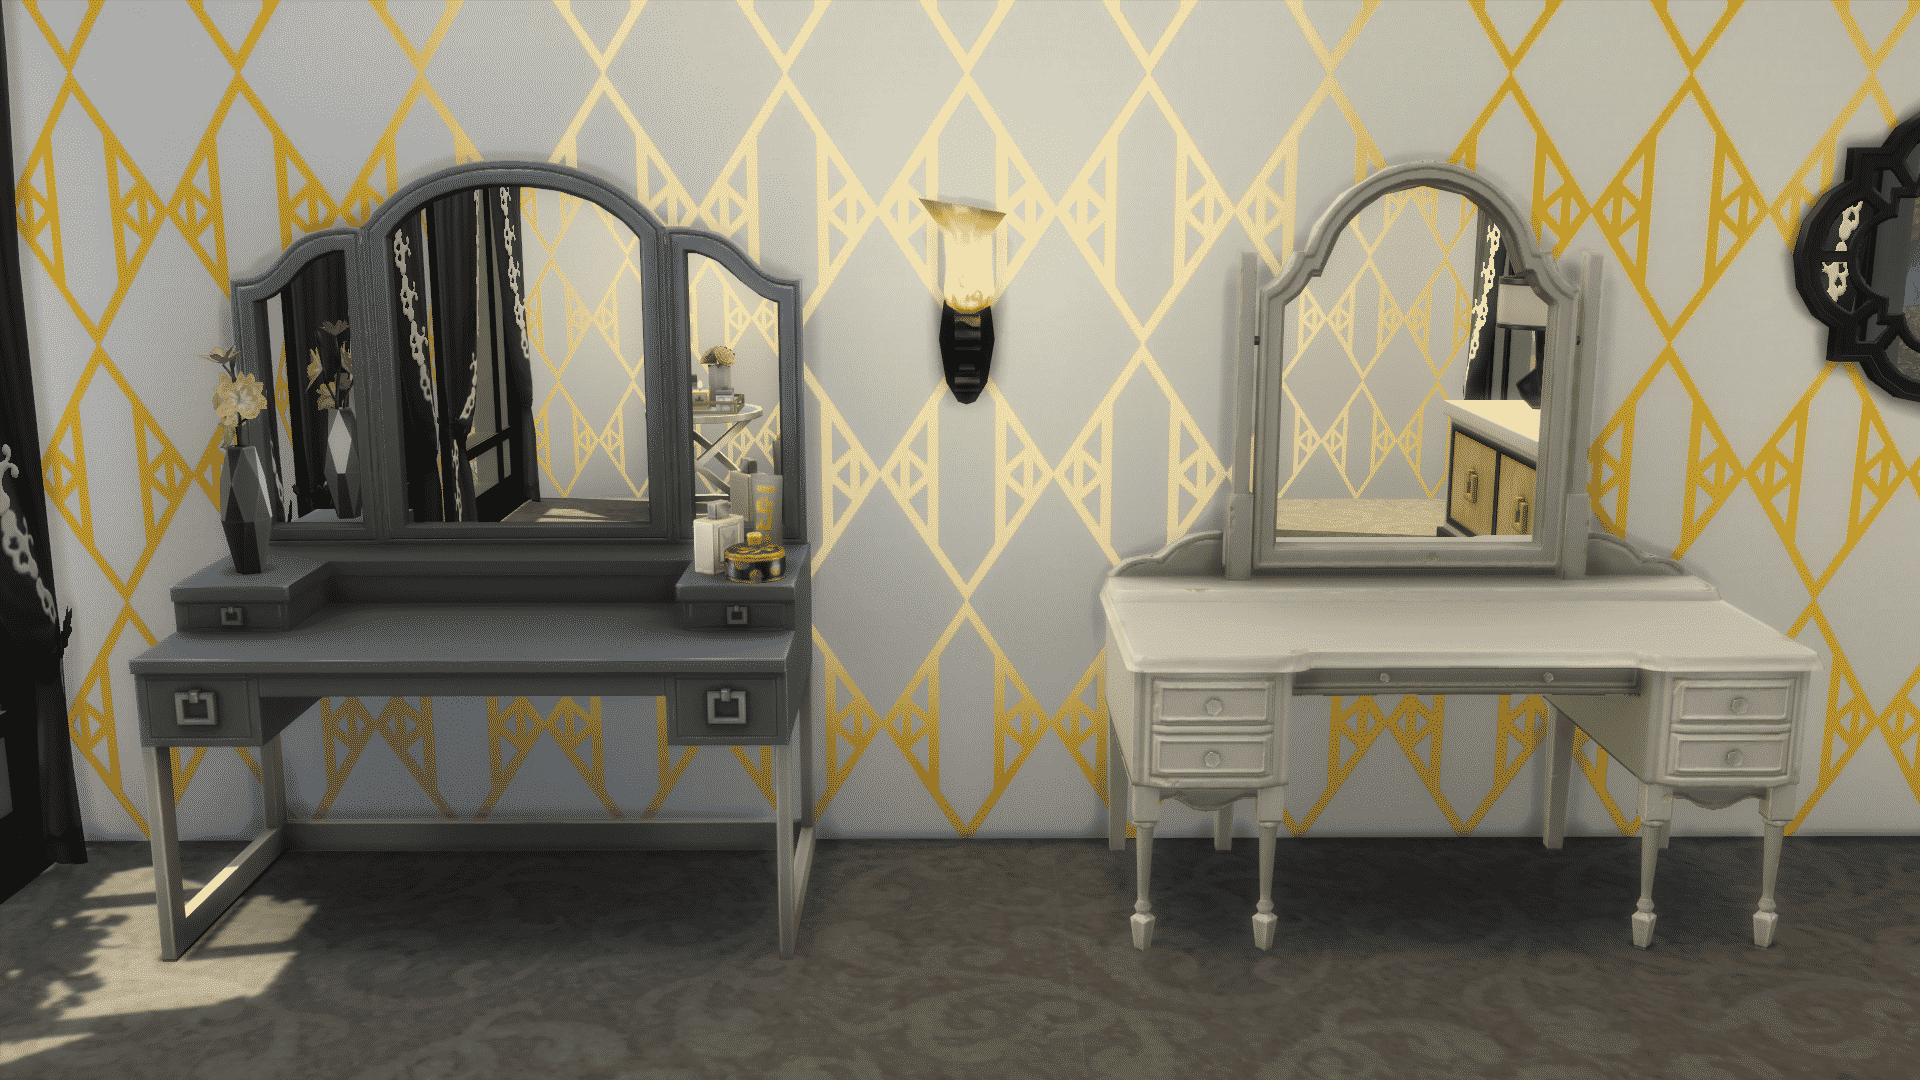 The Sims 4 Vintage Glamour The Vanity Table Globe Bar